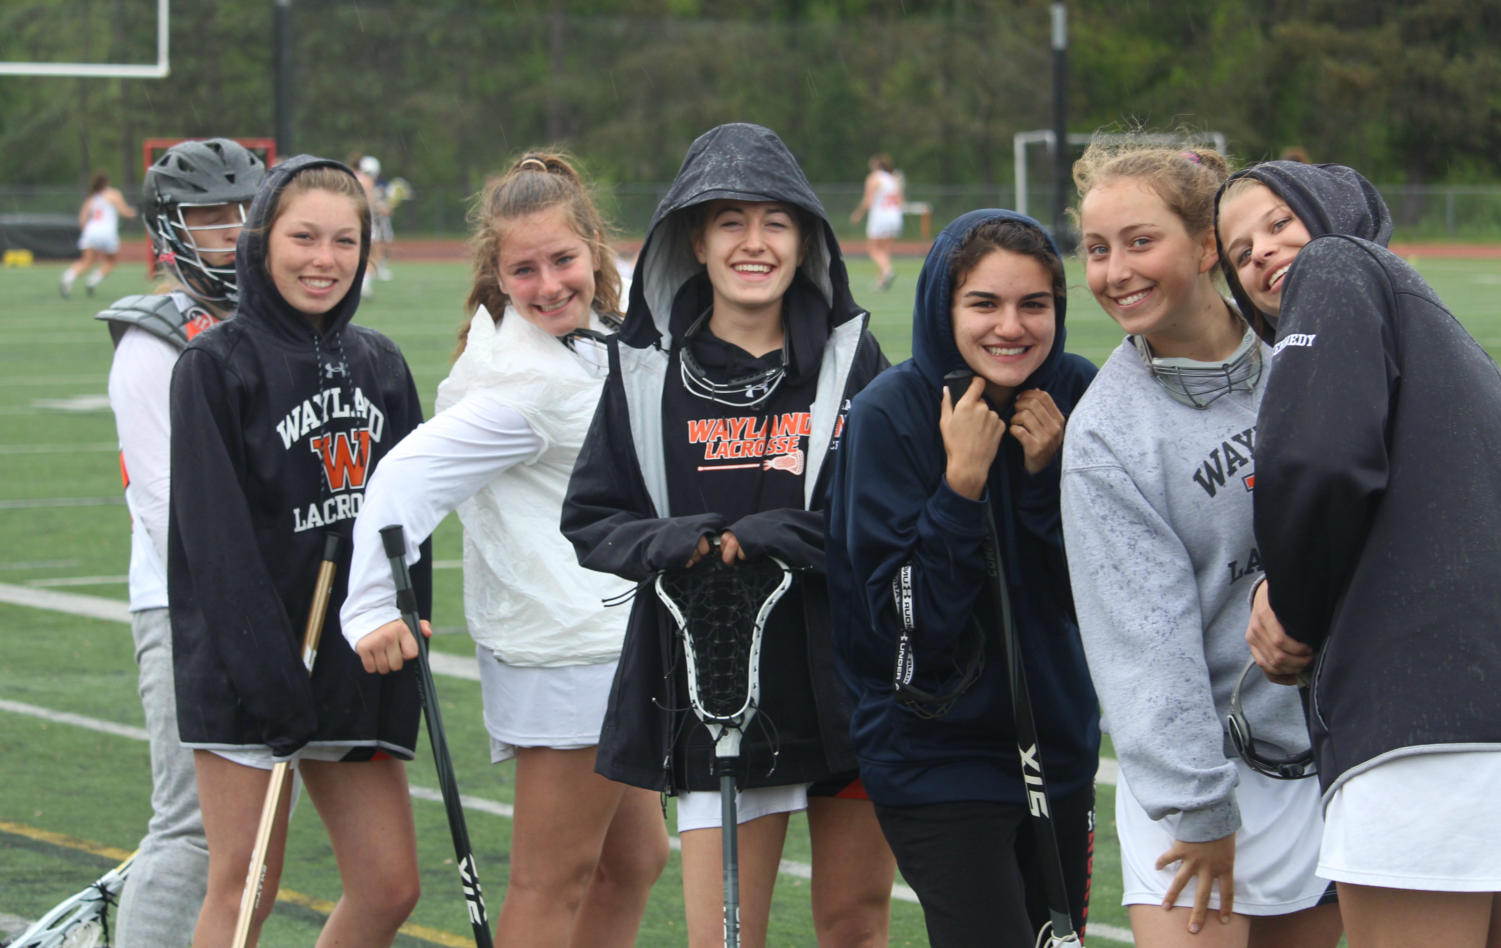 Freshmen+Julia+Wegerbauer%2C+Sophie+Ellenbogen%2C+Emily+Staiti%2C+junior+Christina+Taxiarchis+and+sophomore+Marley+Miller+pose+for+a+photo+on+the+sidelines.